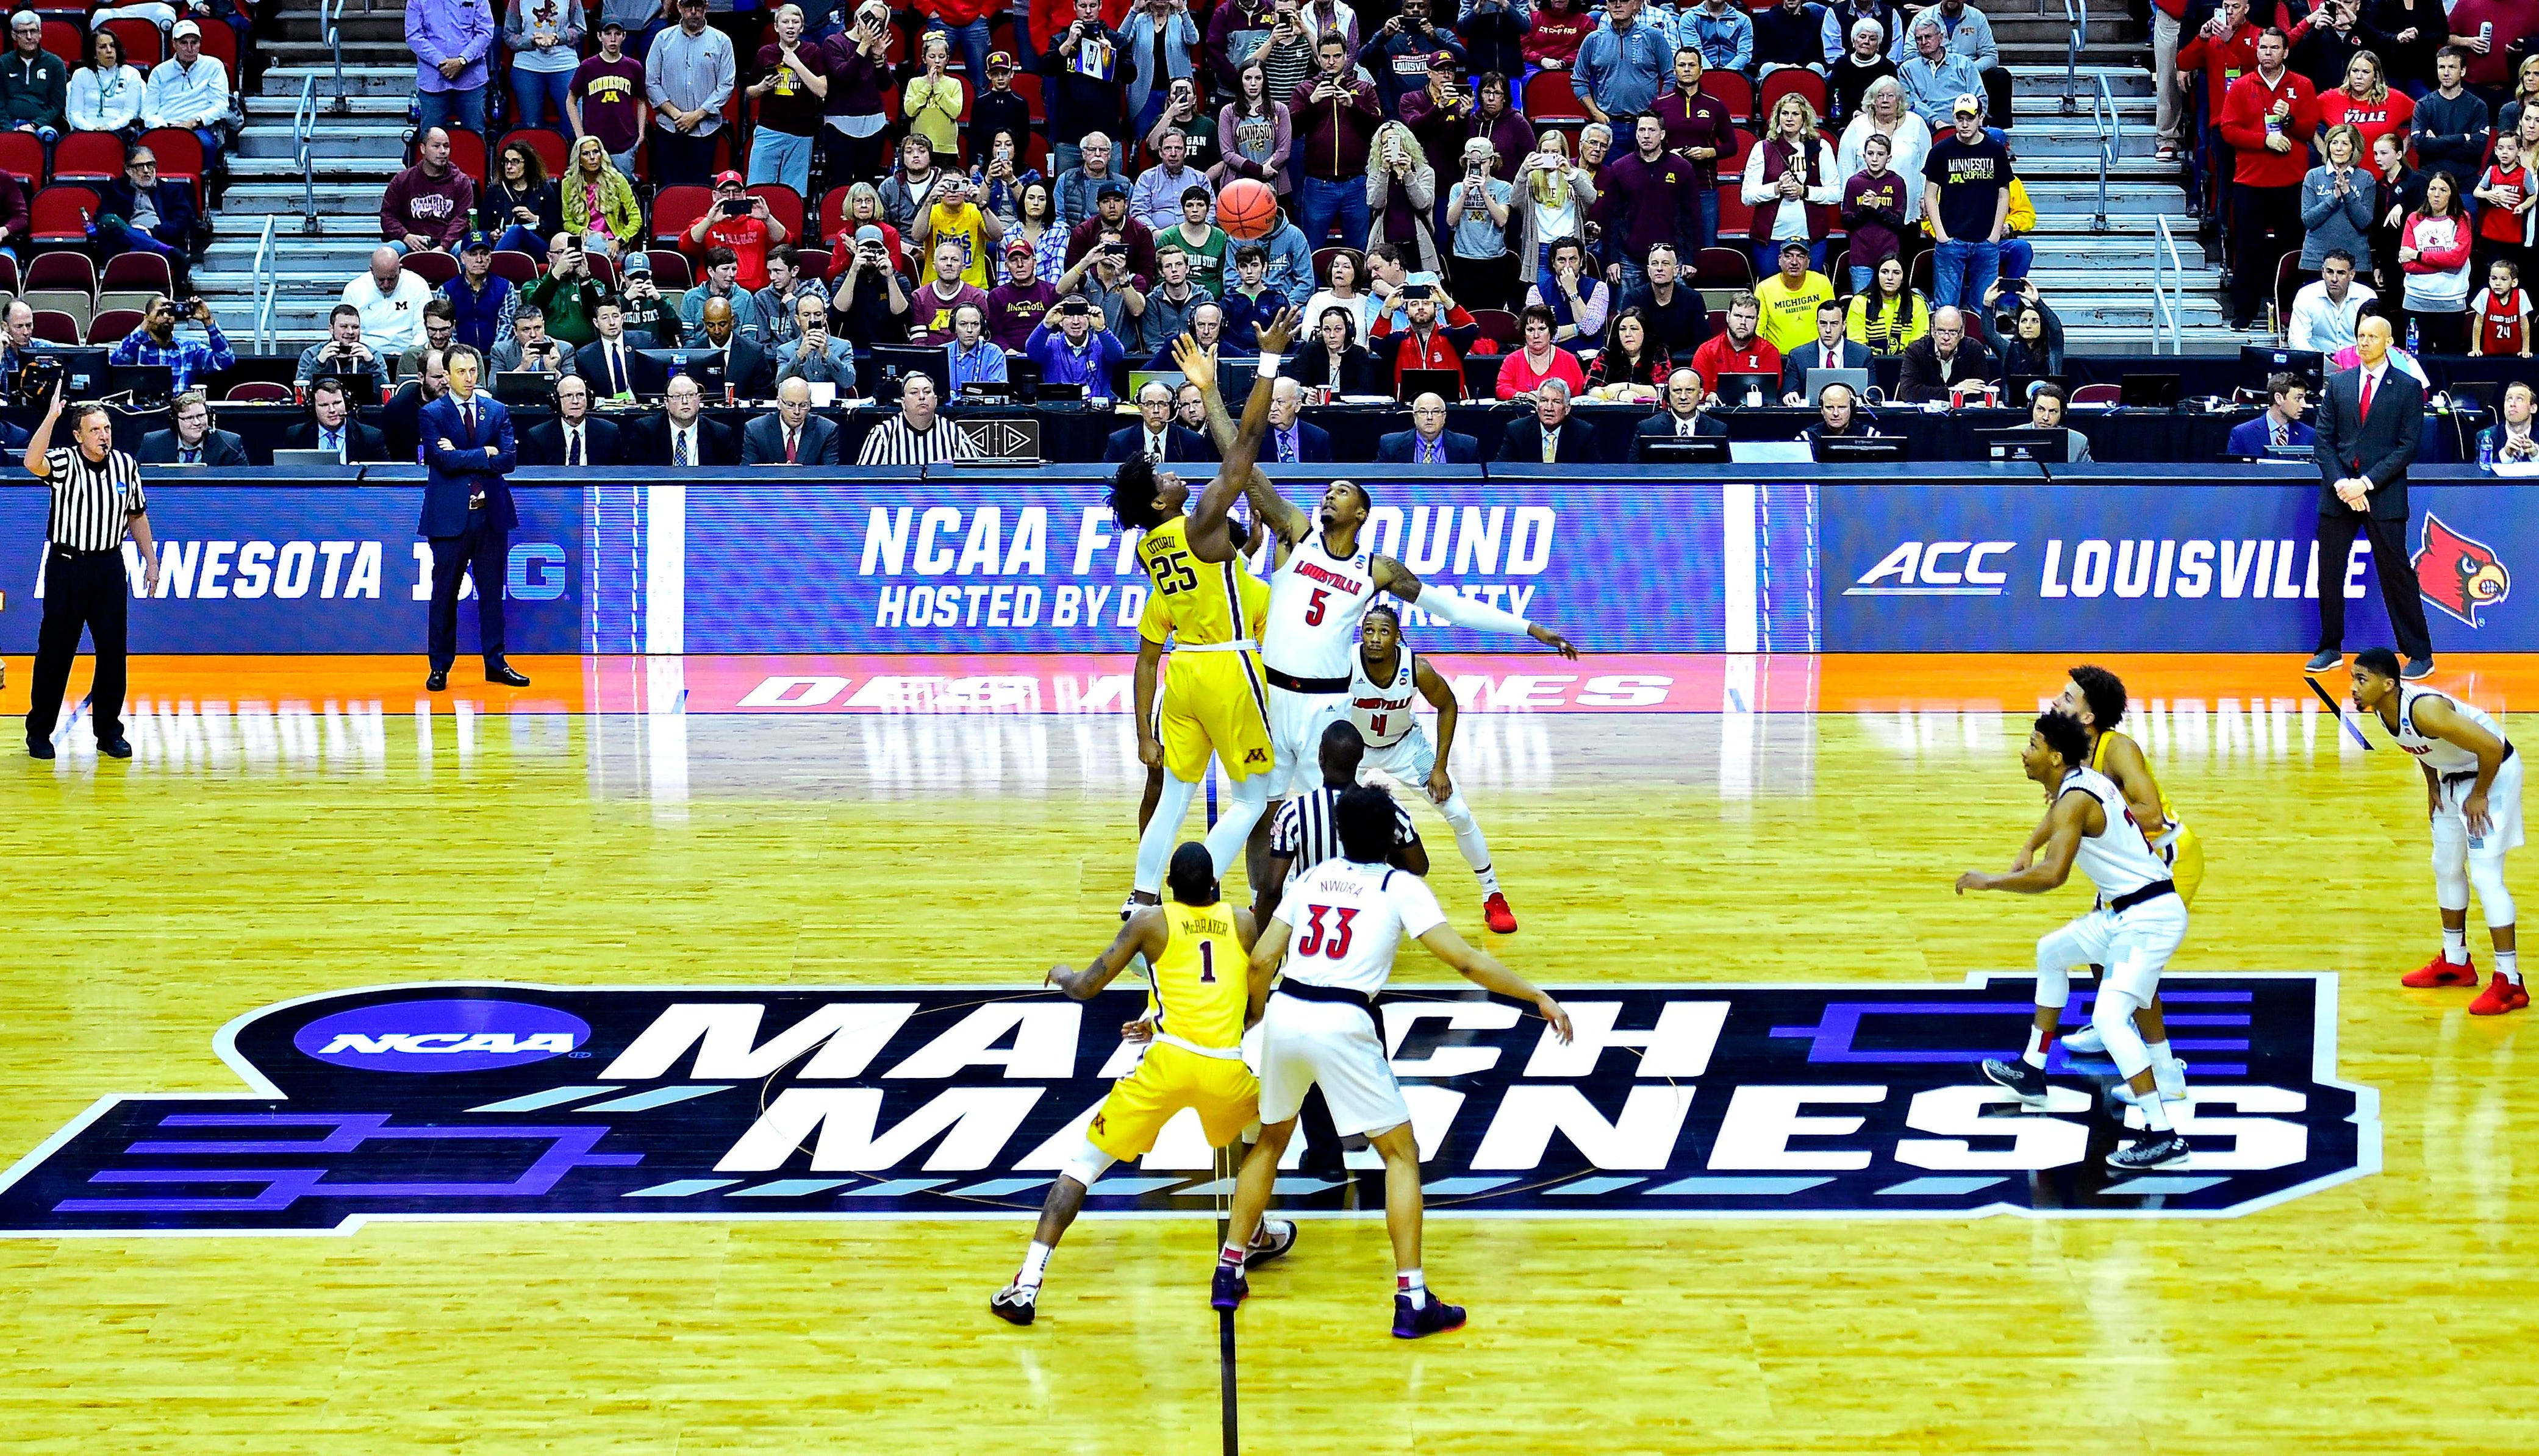 Minnesota center Daniel Oturu, left,  (25) and Louisville center Malik Williams go for the opening tip in the first round of the 2019 NCAA tournament.